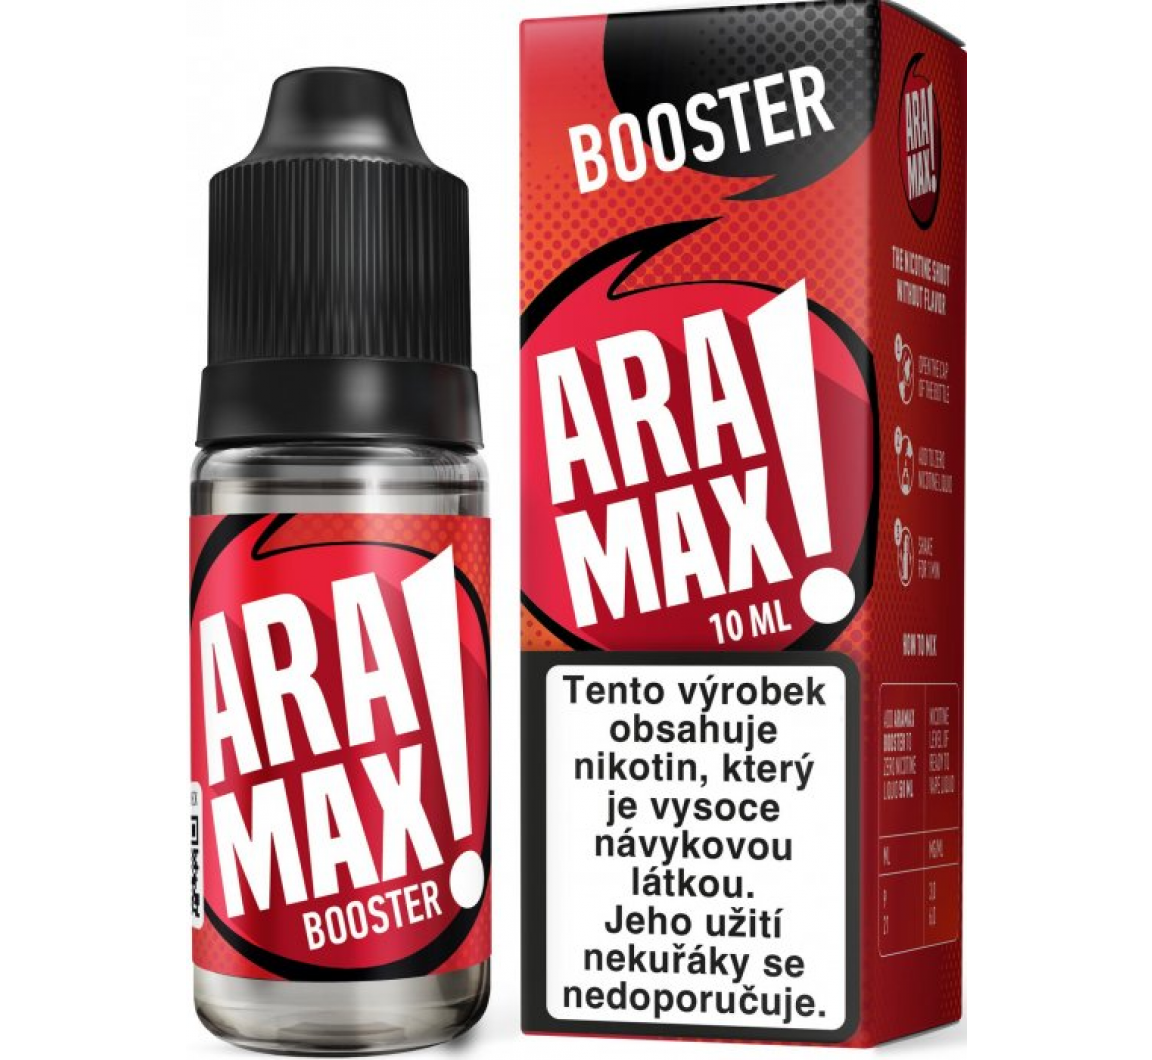 Aramax Booster CZ 10ml PG50 VG50 20mg